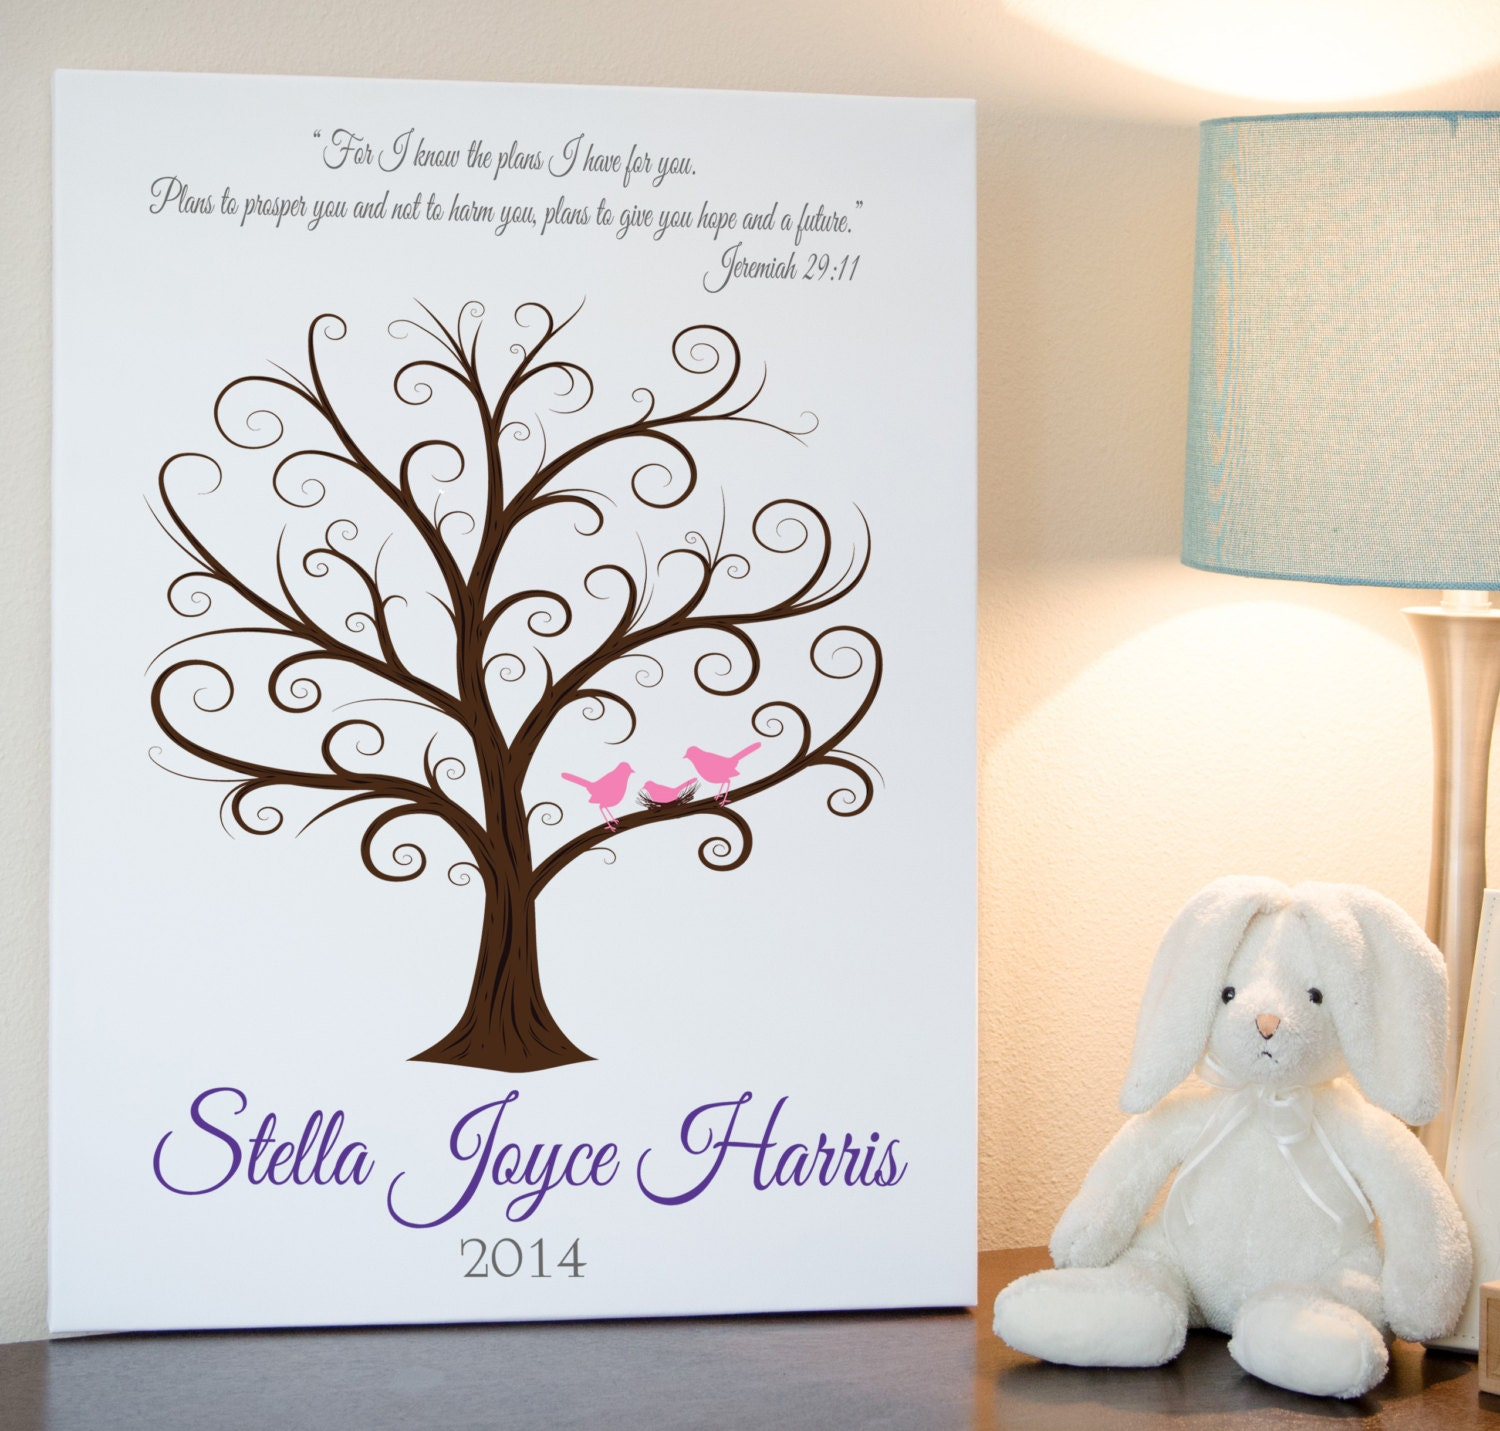 Thumbprint Tree Guest Sign: Baby Shower Fingerprint Tree 18x24 Guest Book Tree Guest